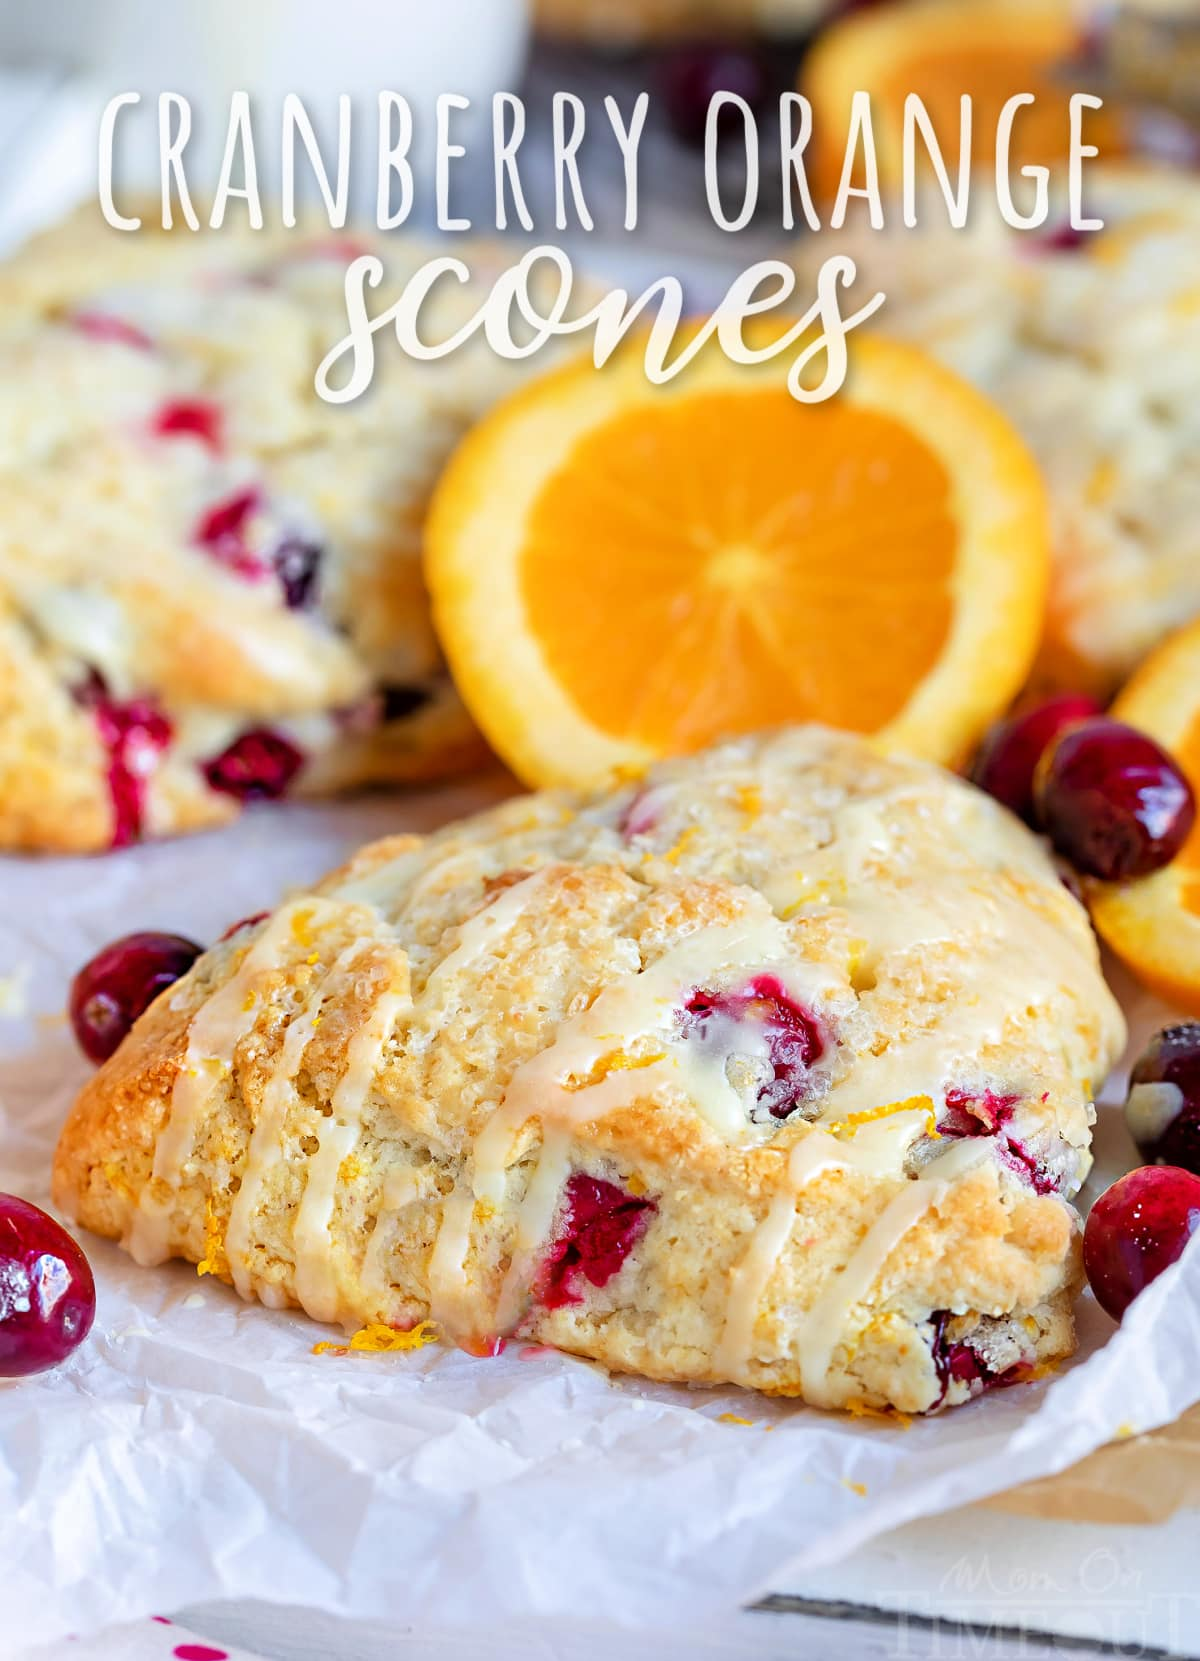 cranberry orange scone sitting on parchment paper with orange glaze drizzled on top with text overlay at top of image